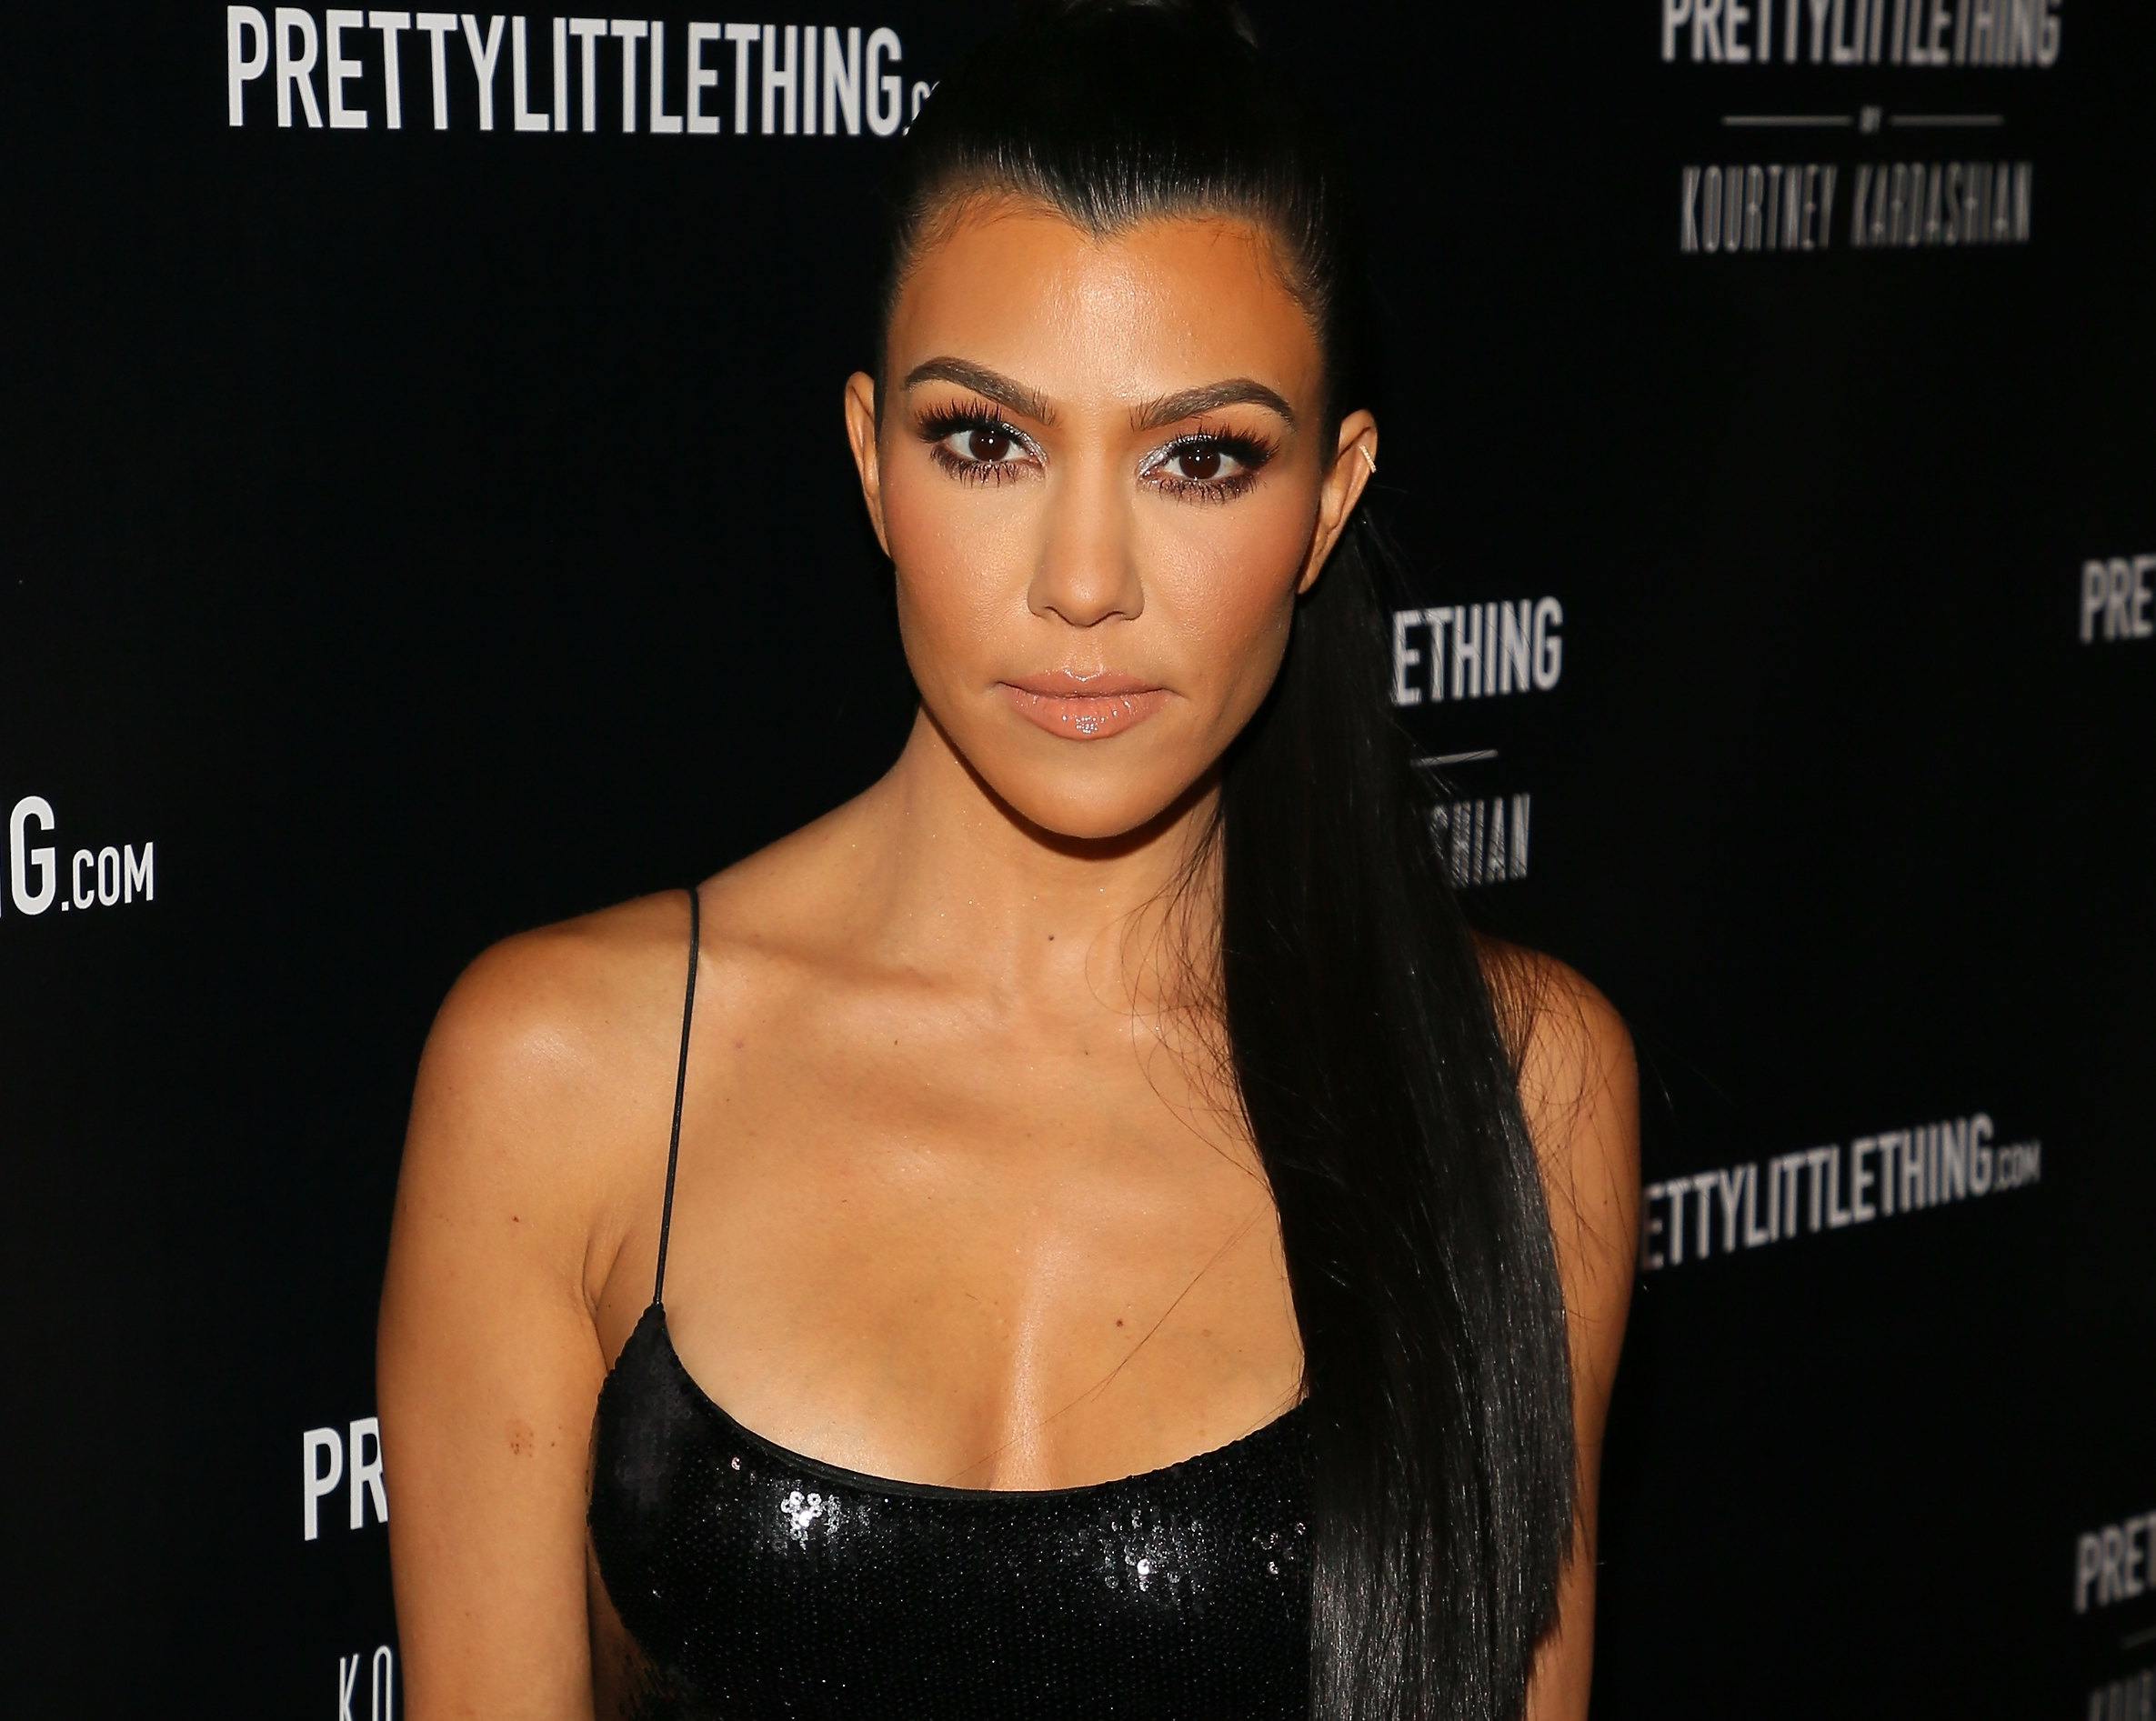 This is why Kourtney Kardashian deleted her Instagram yesterday